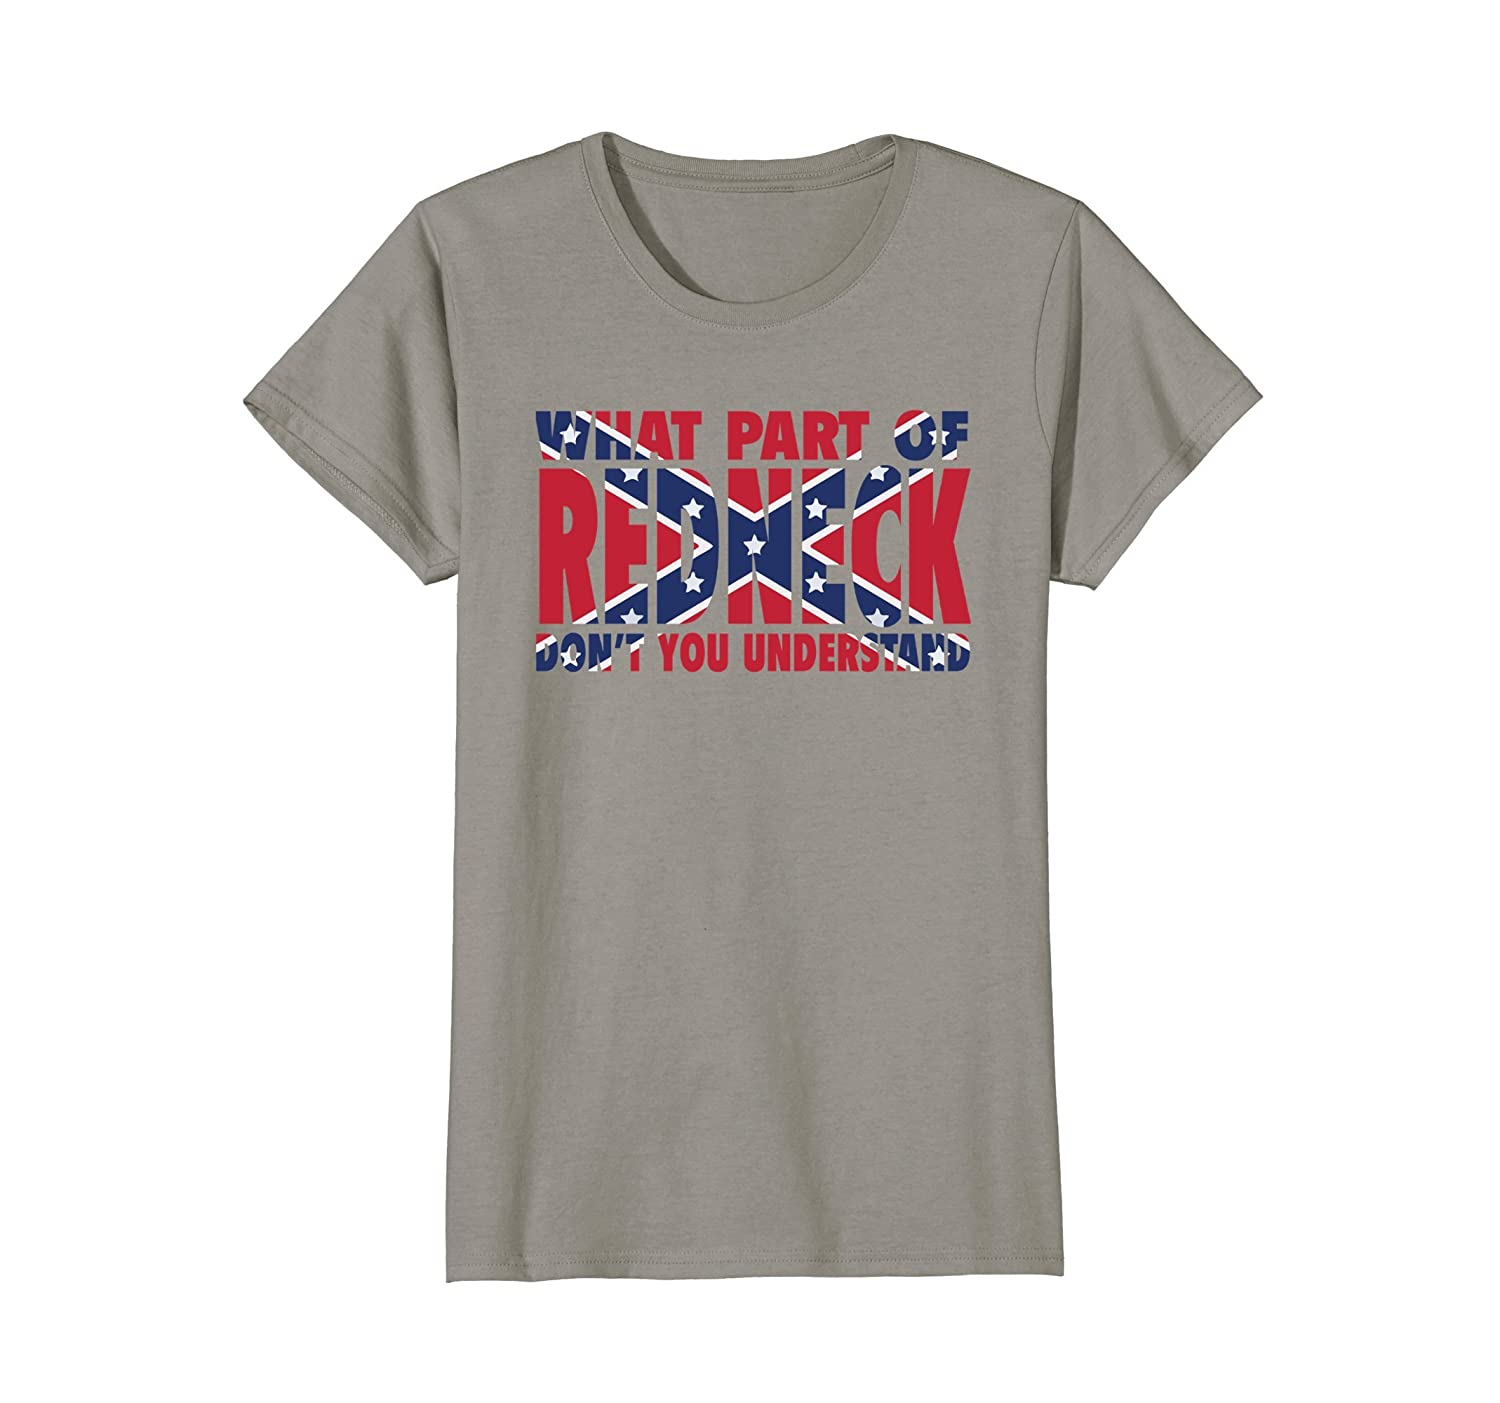 76047f558 Amazon.com: WHAT PART OF REDNECK T-SHIRT Southern T-Shirt: Clothing